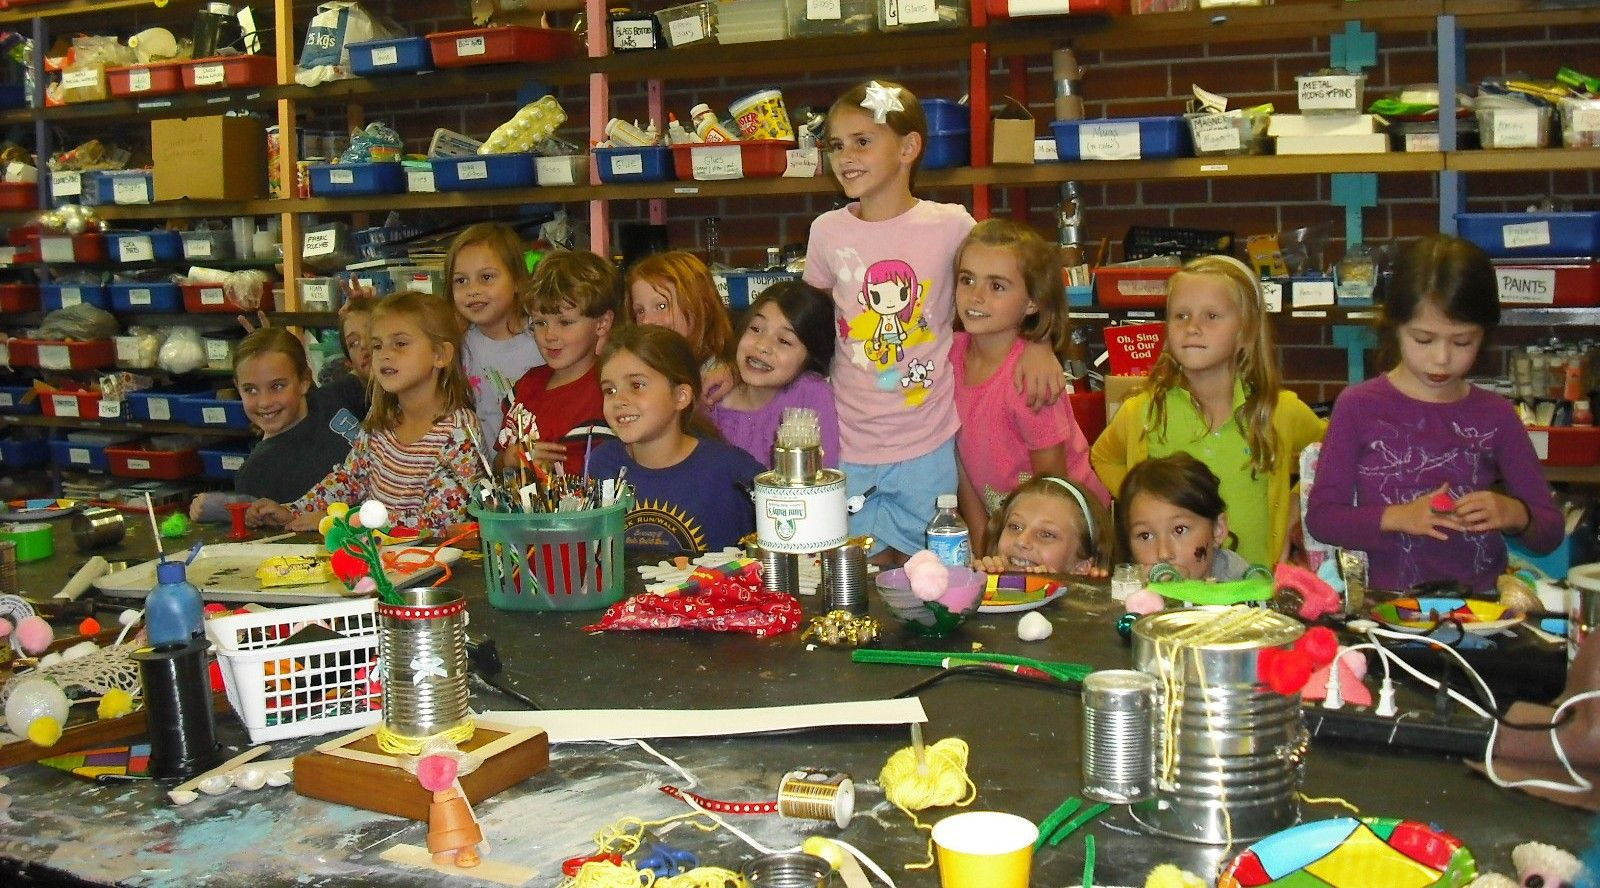 Resource Warehouse & Gallery ArtyParty! Great place to take your kids to have fun doing Arts and Crafts.